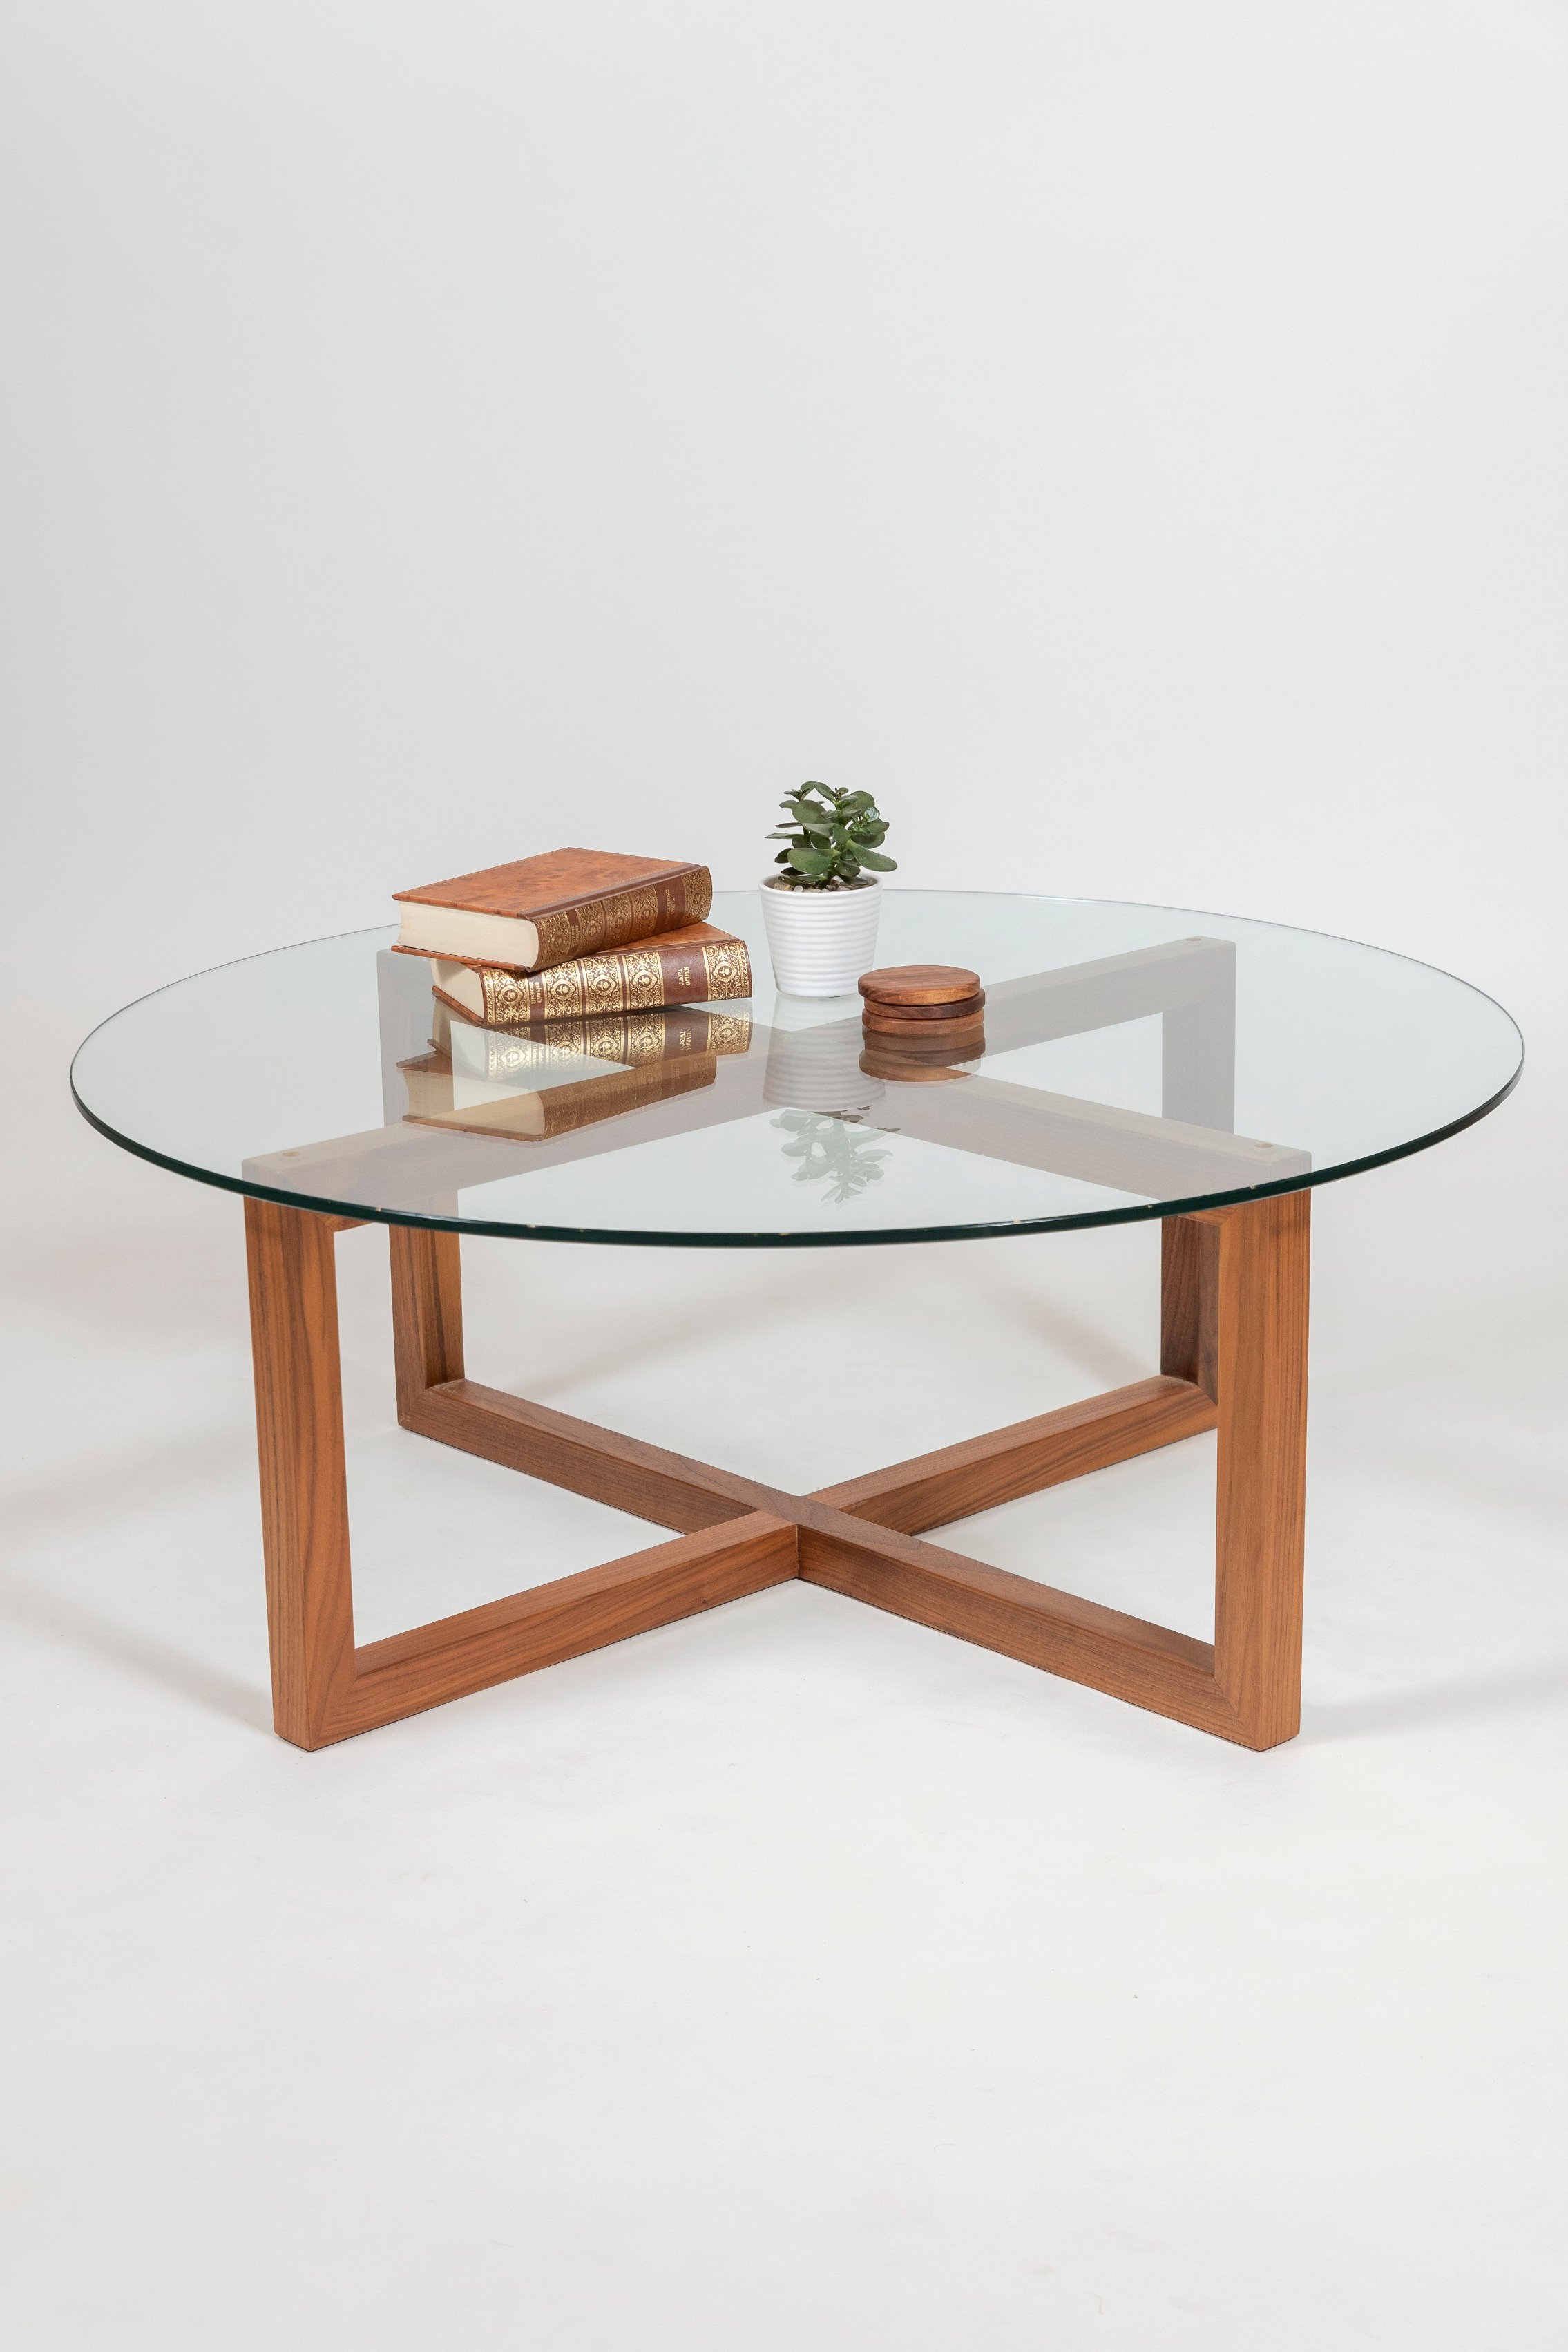 Best And Newest Baxter Coffee Table – Buywood Furniture Intended For Brisbane Oval Coffee Tables (View 1 of 20)